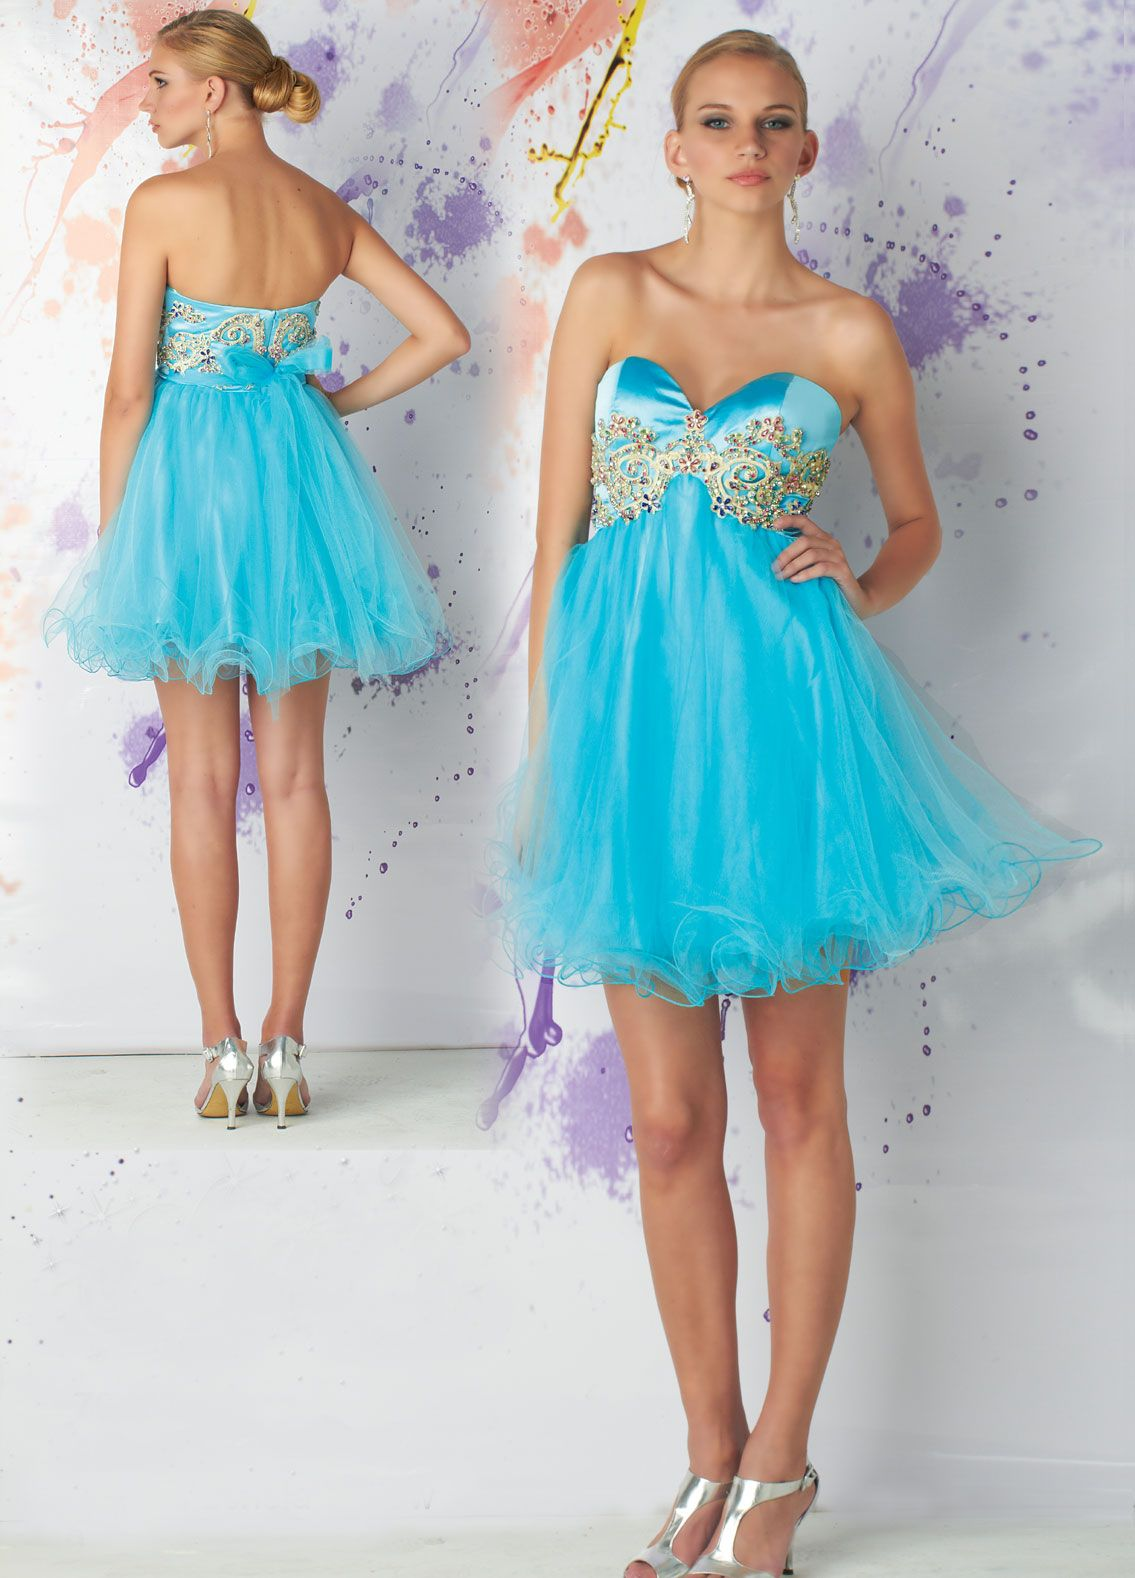 Prom strapless baby doll dress. | magpie dresses | Pinterest | Baby ...